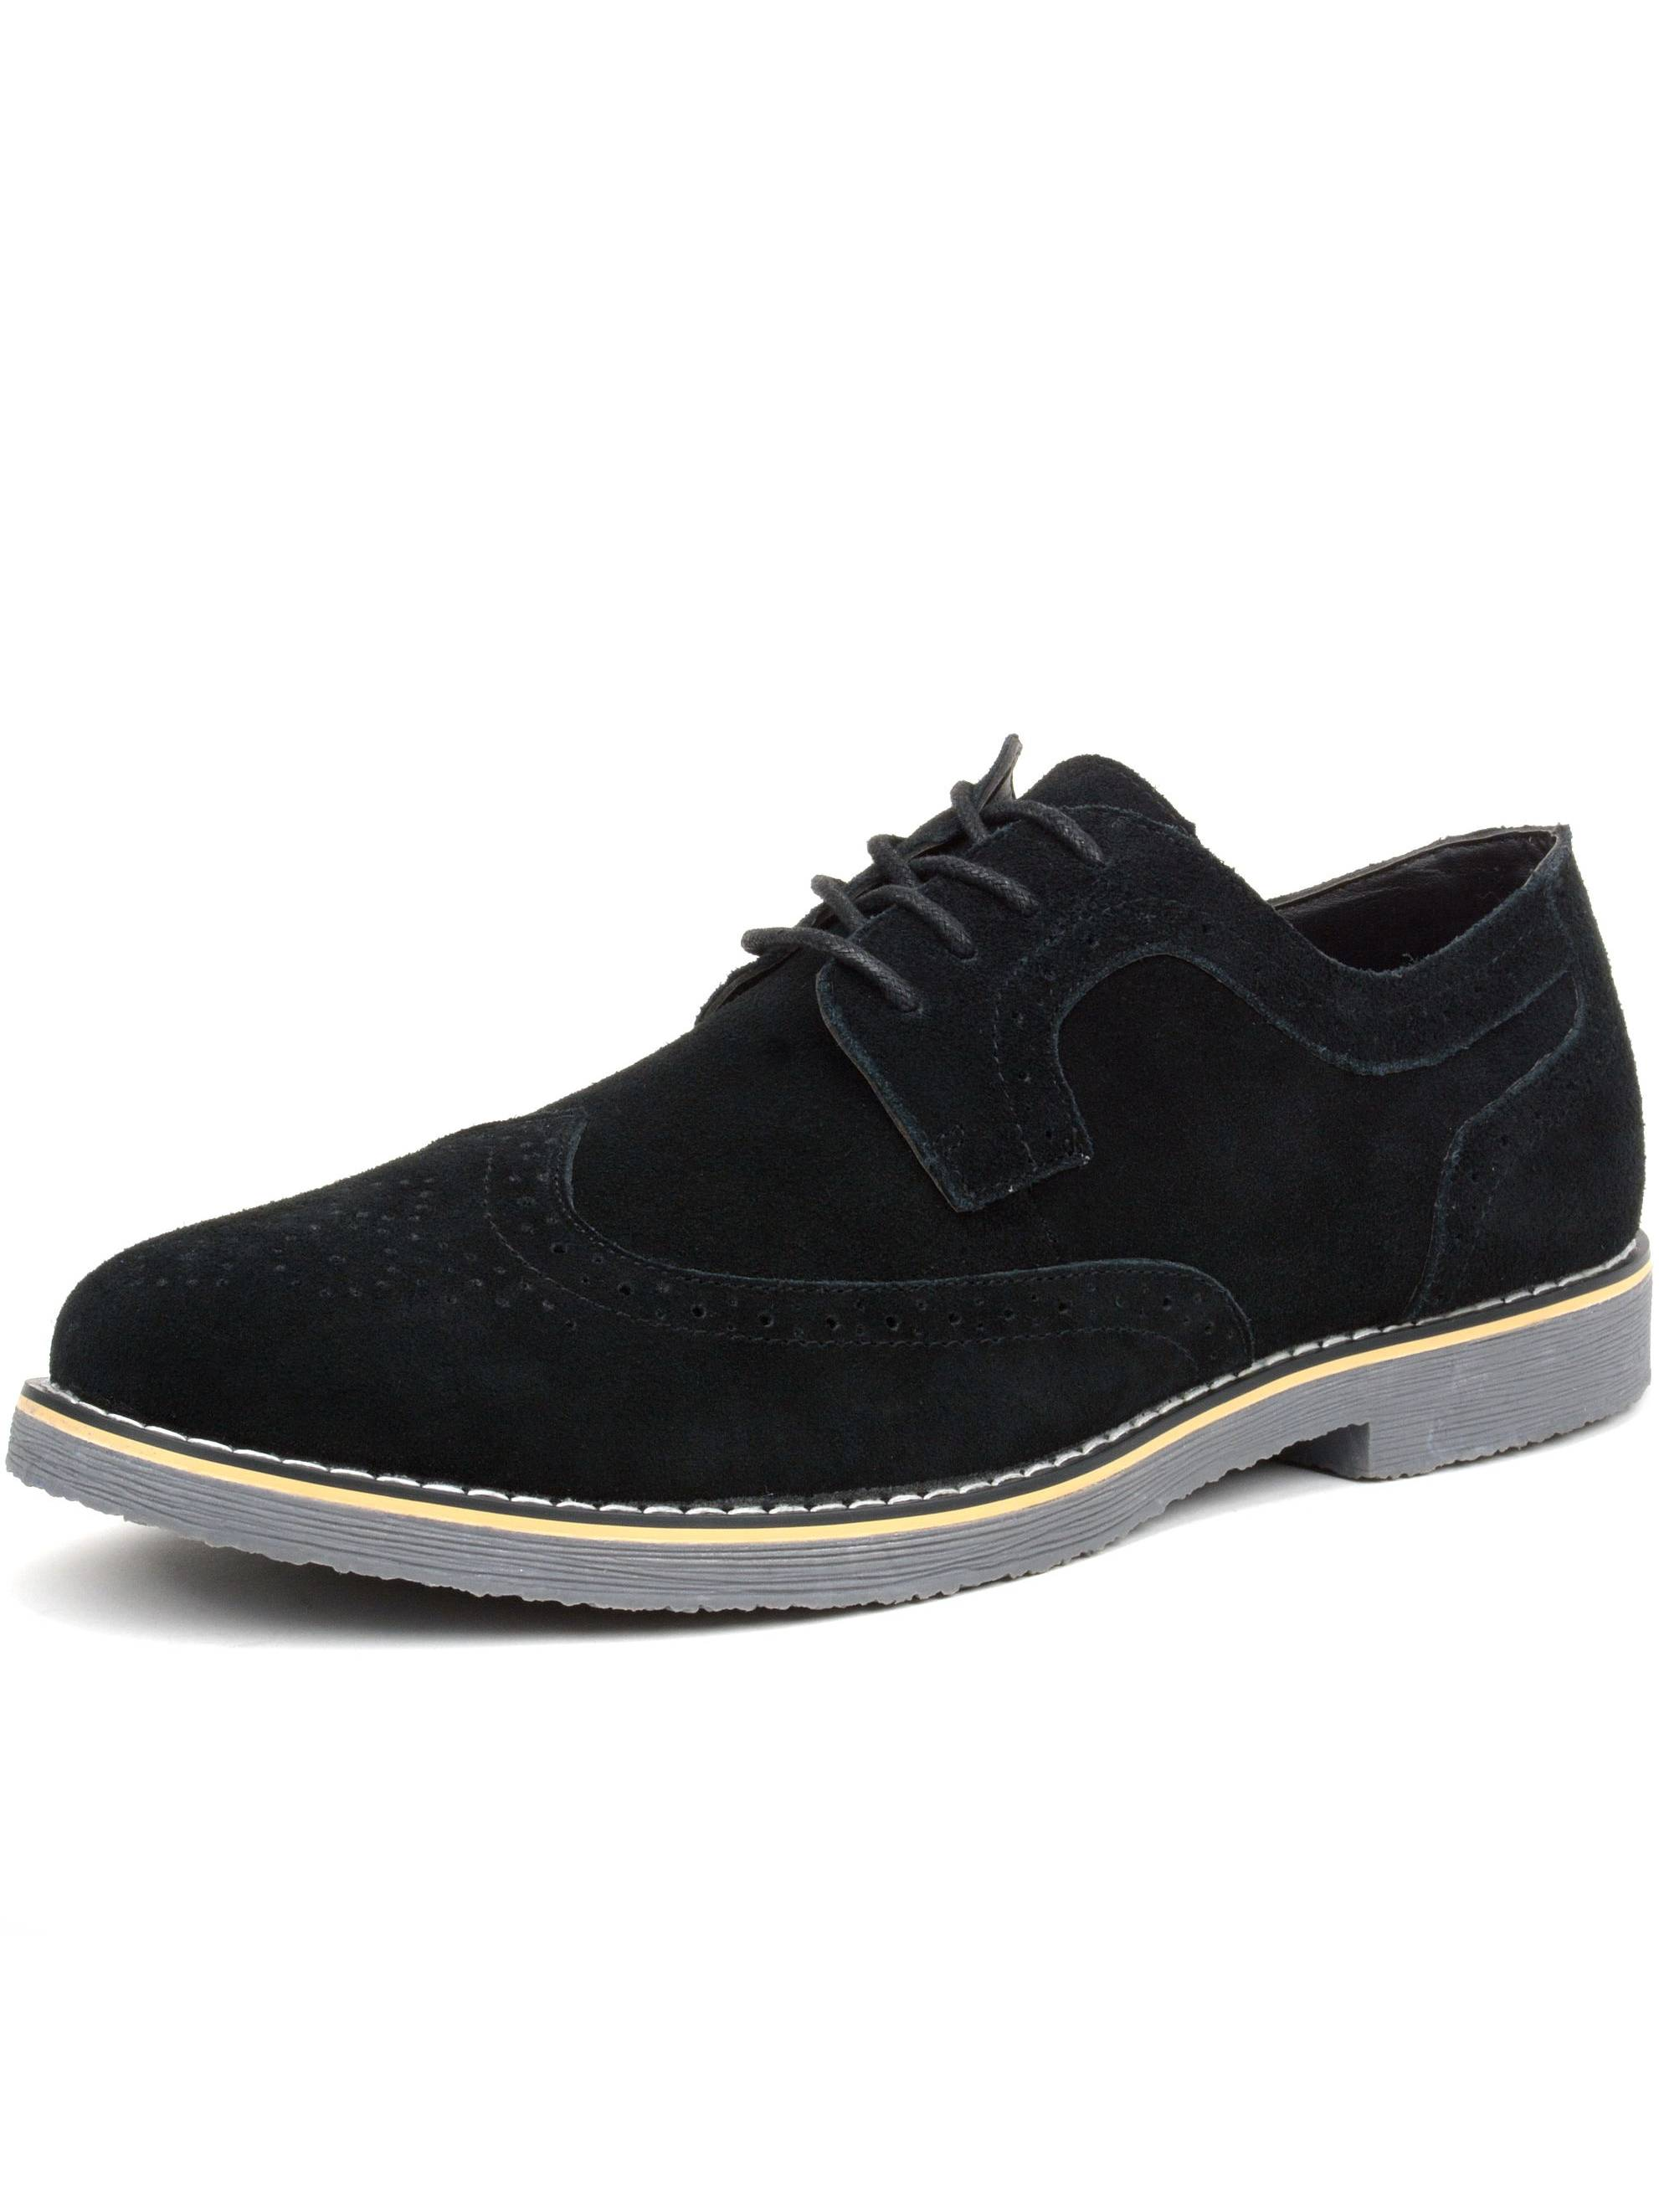 Alpine Swiss Beau Men's Dress Wingtip Brogue